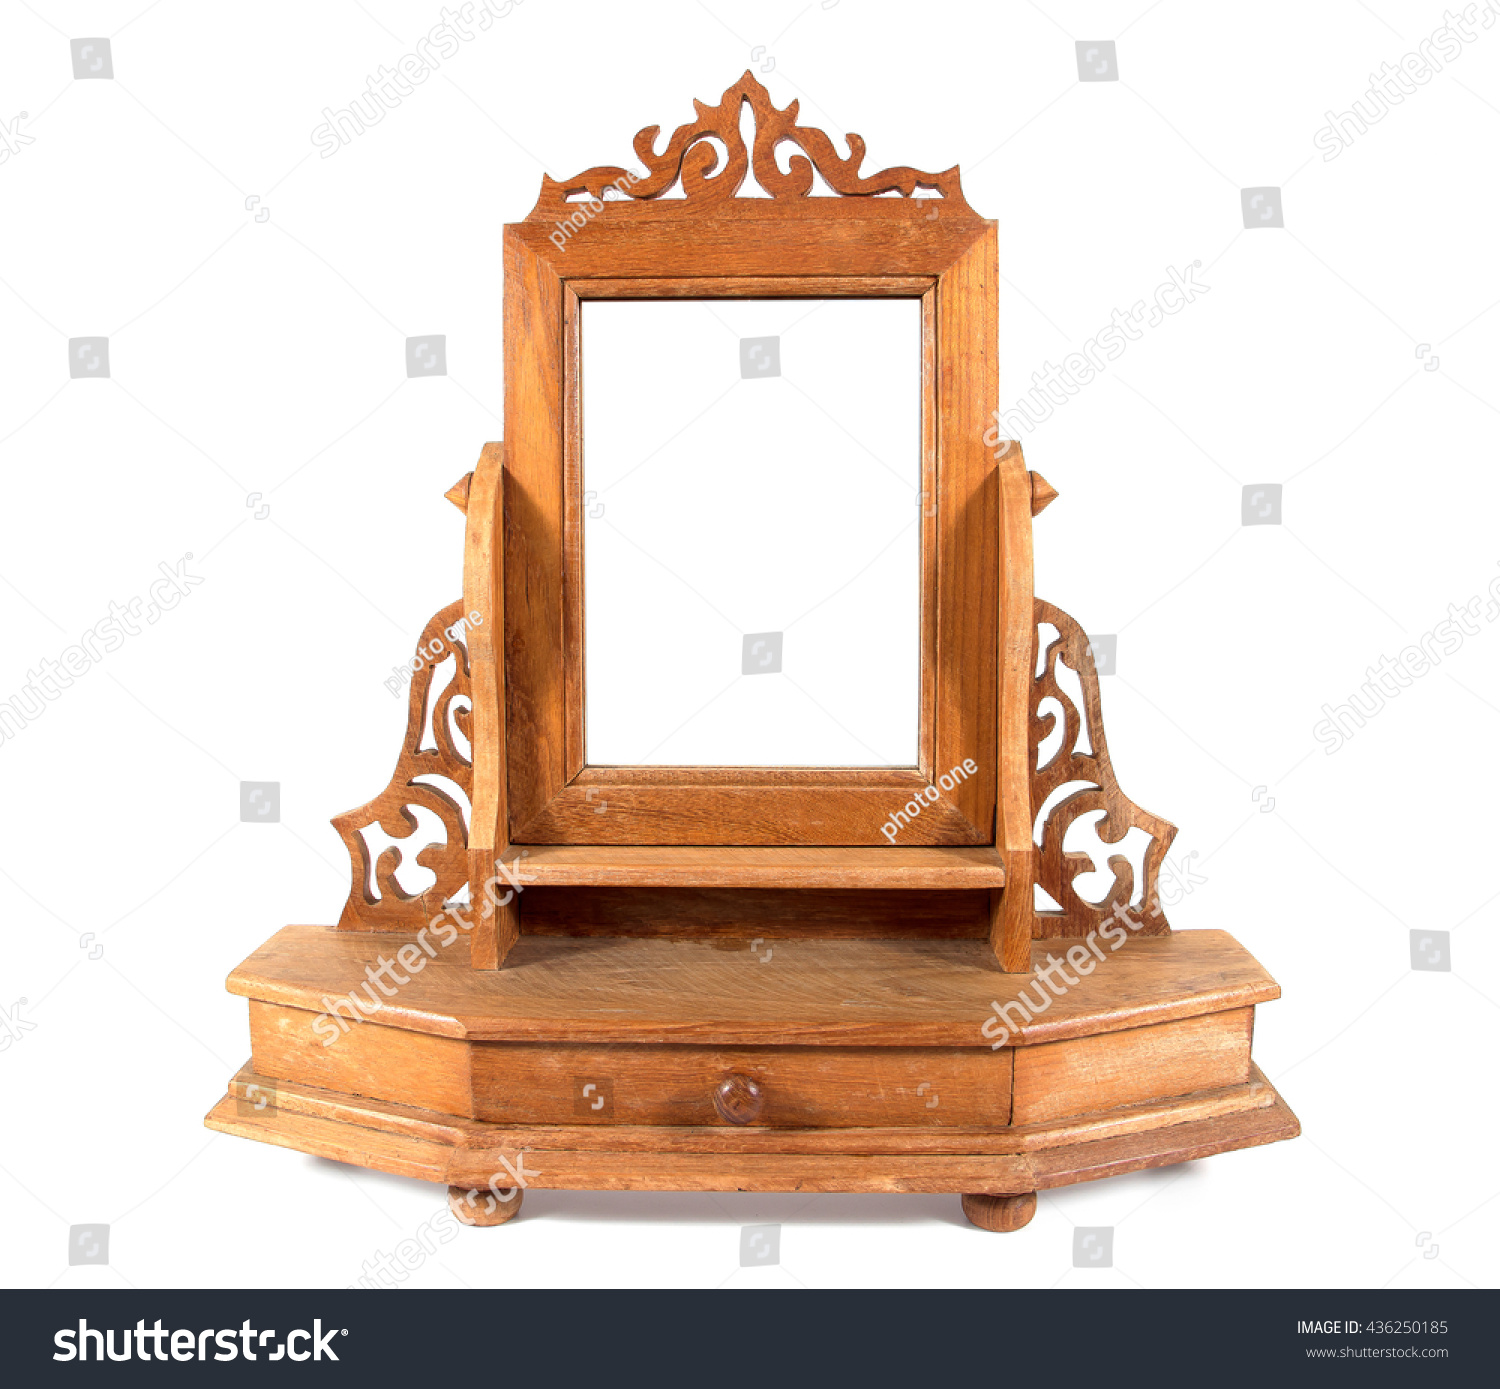 Retro wooden carving dressing table mirror stock photo